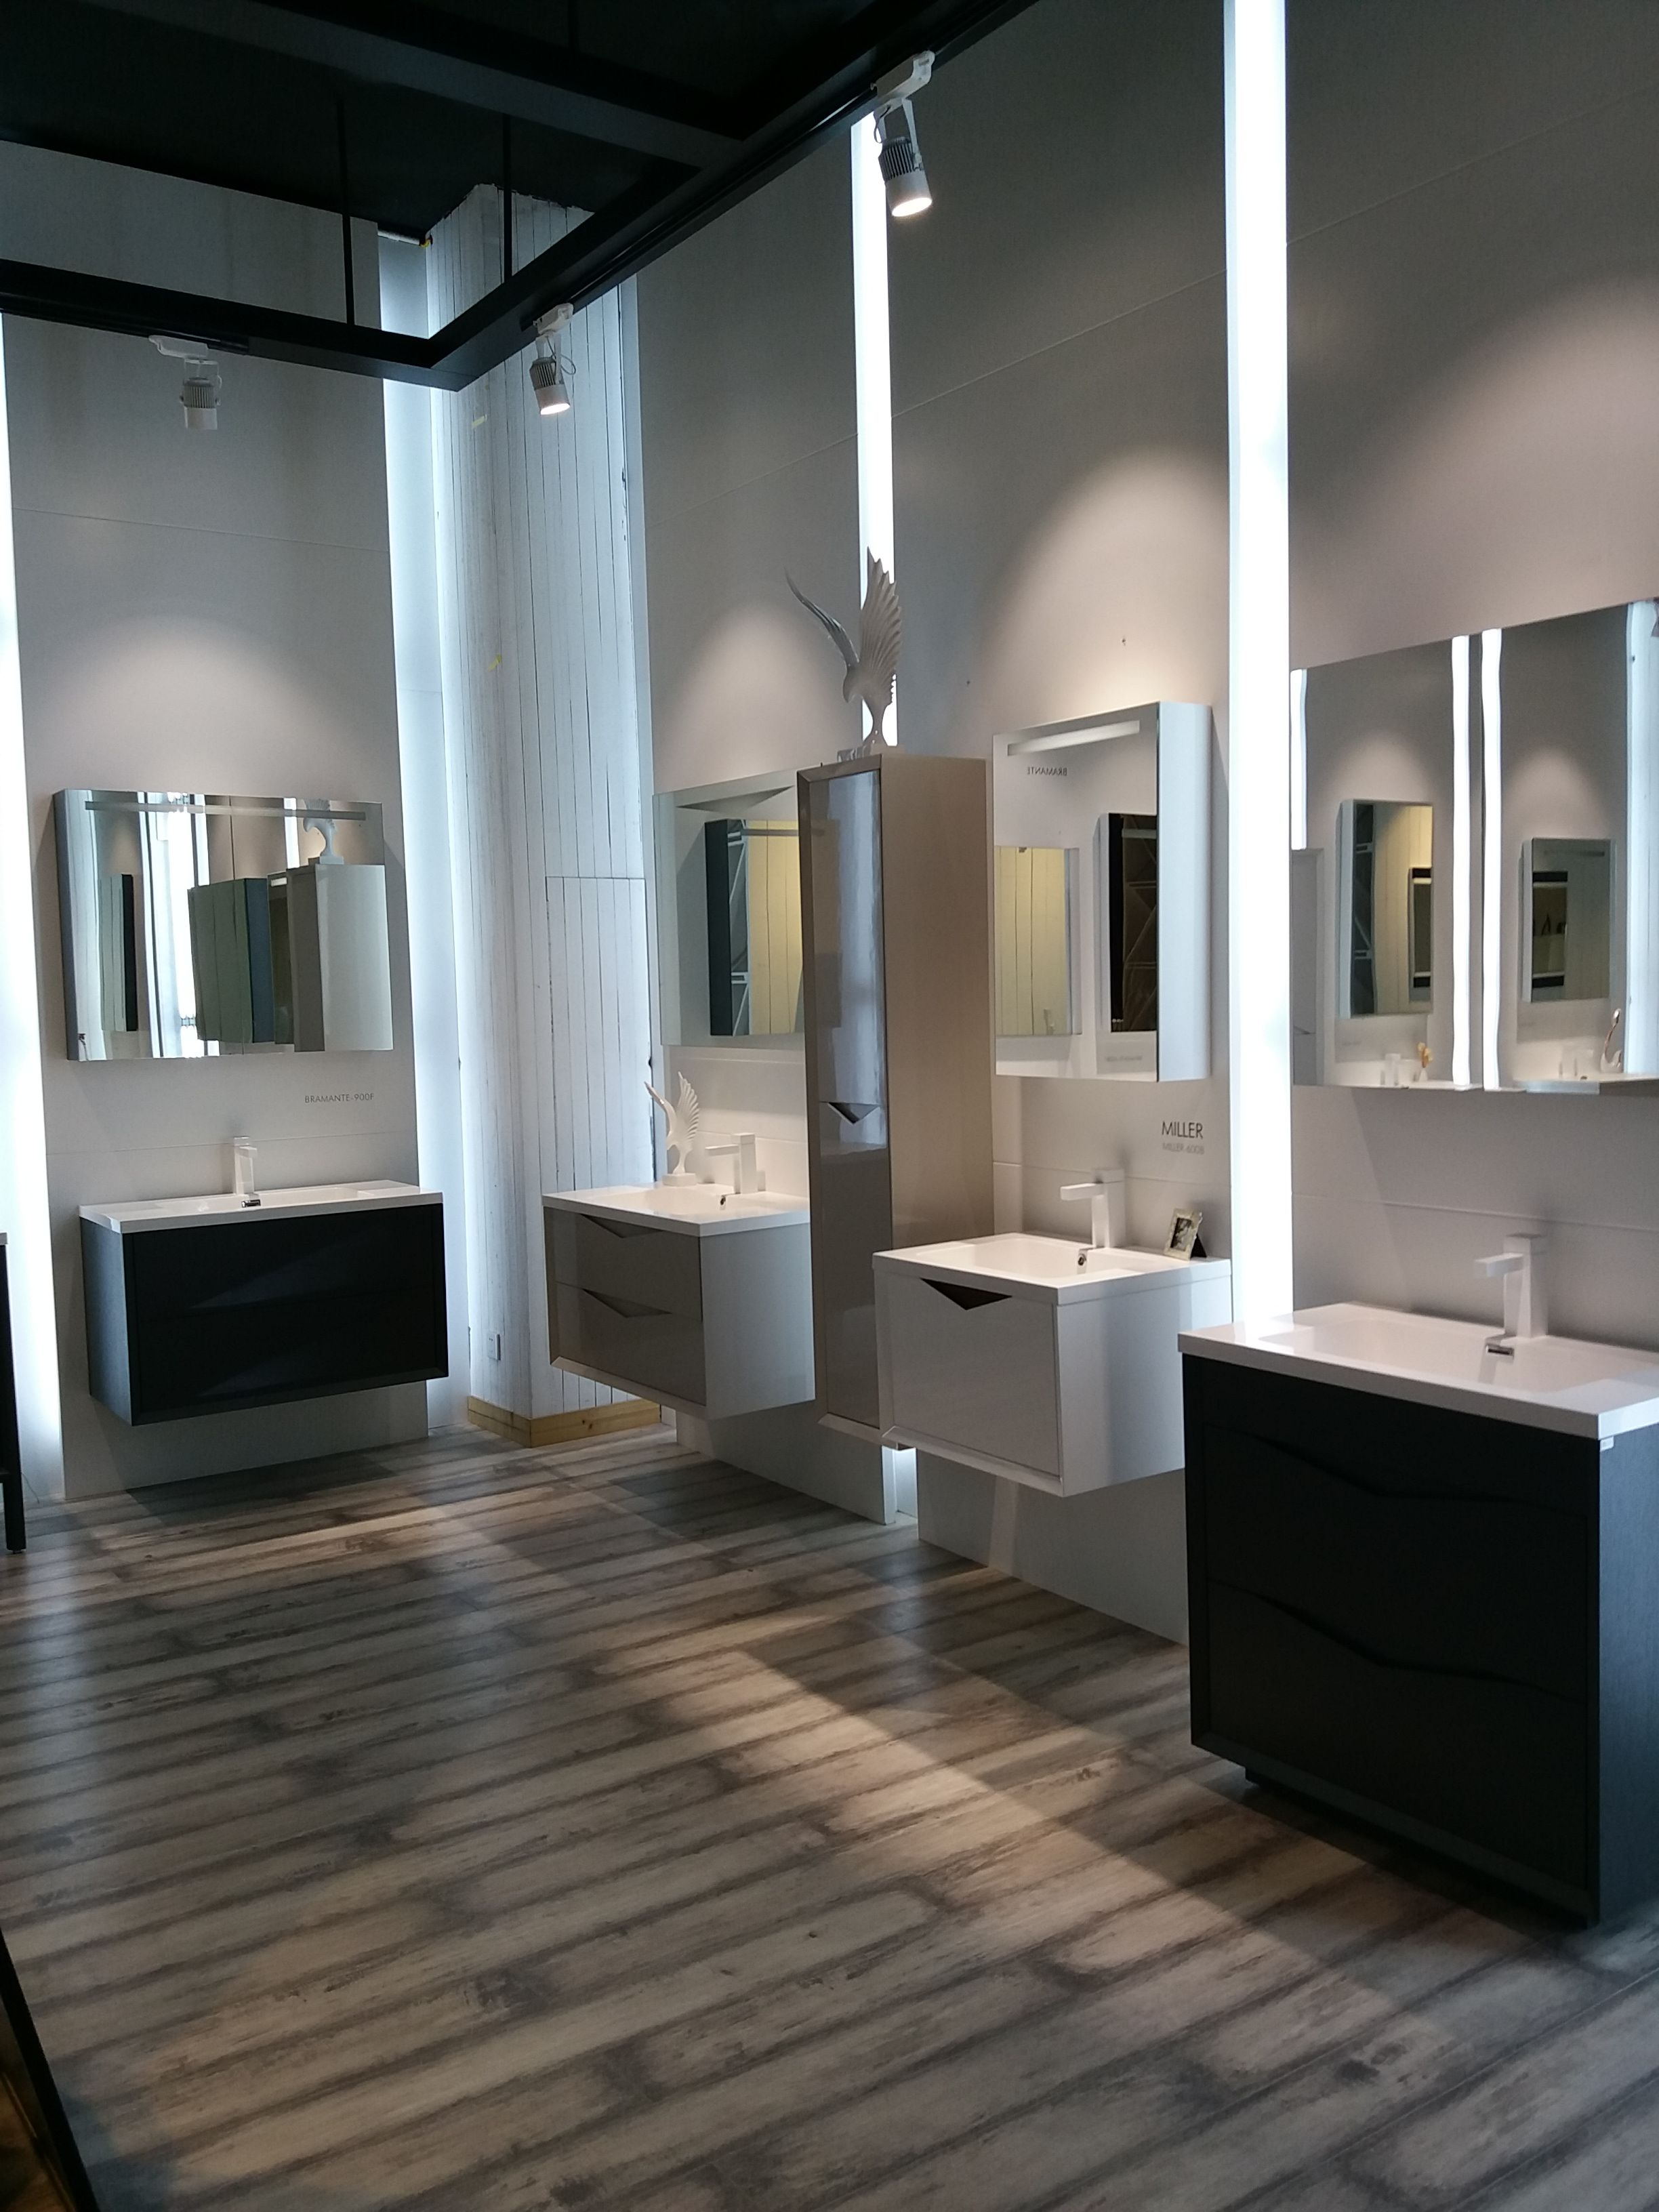 Vumn Bathroom Vanity Showroom Lighted Bathroom Mirror Home Bathroom Vanity